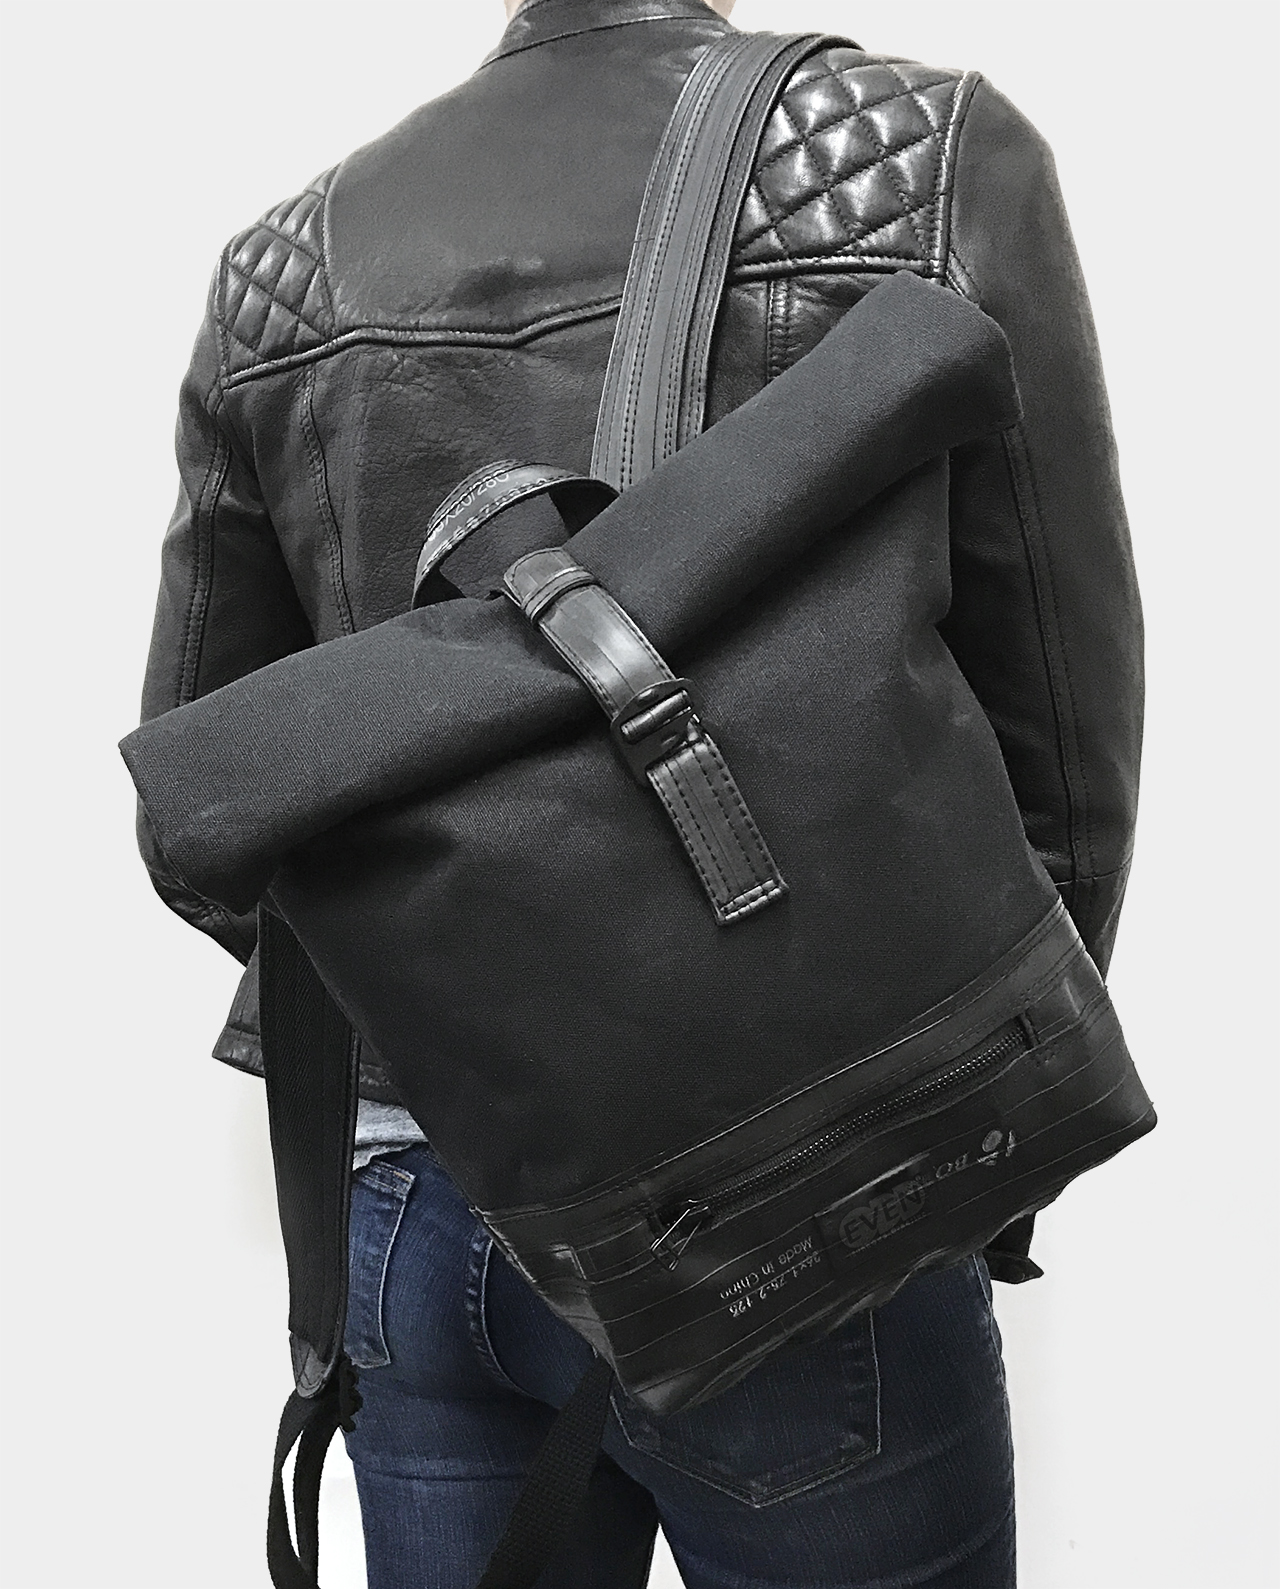 waxed canvas small roll top backpack black